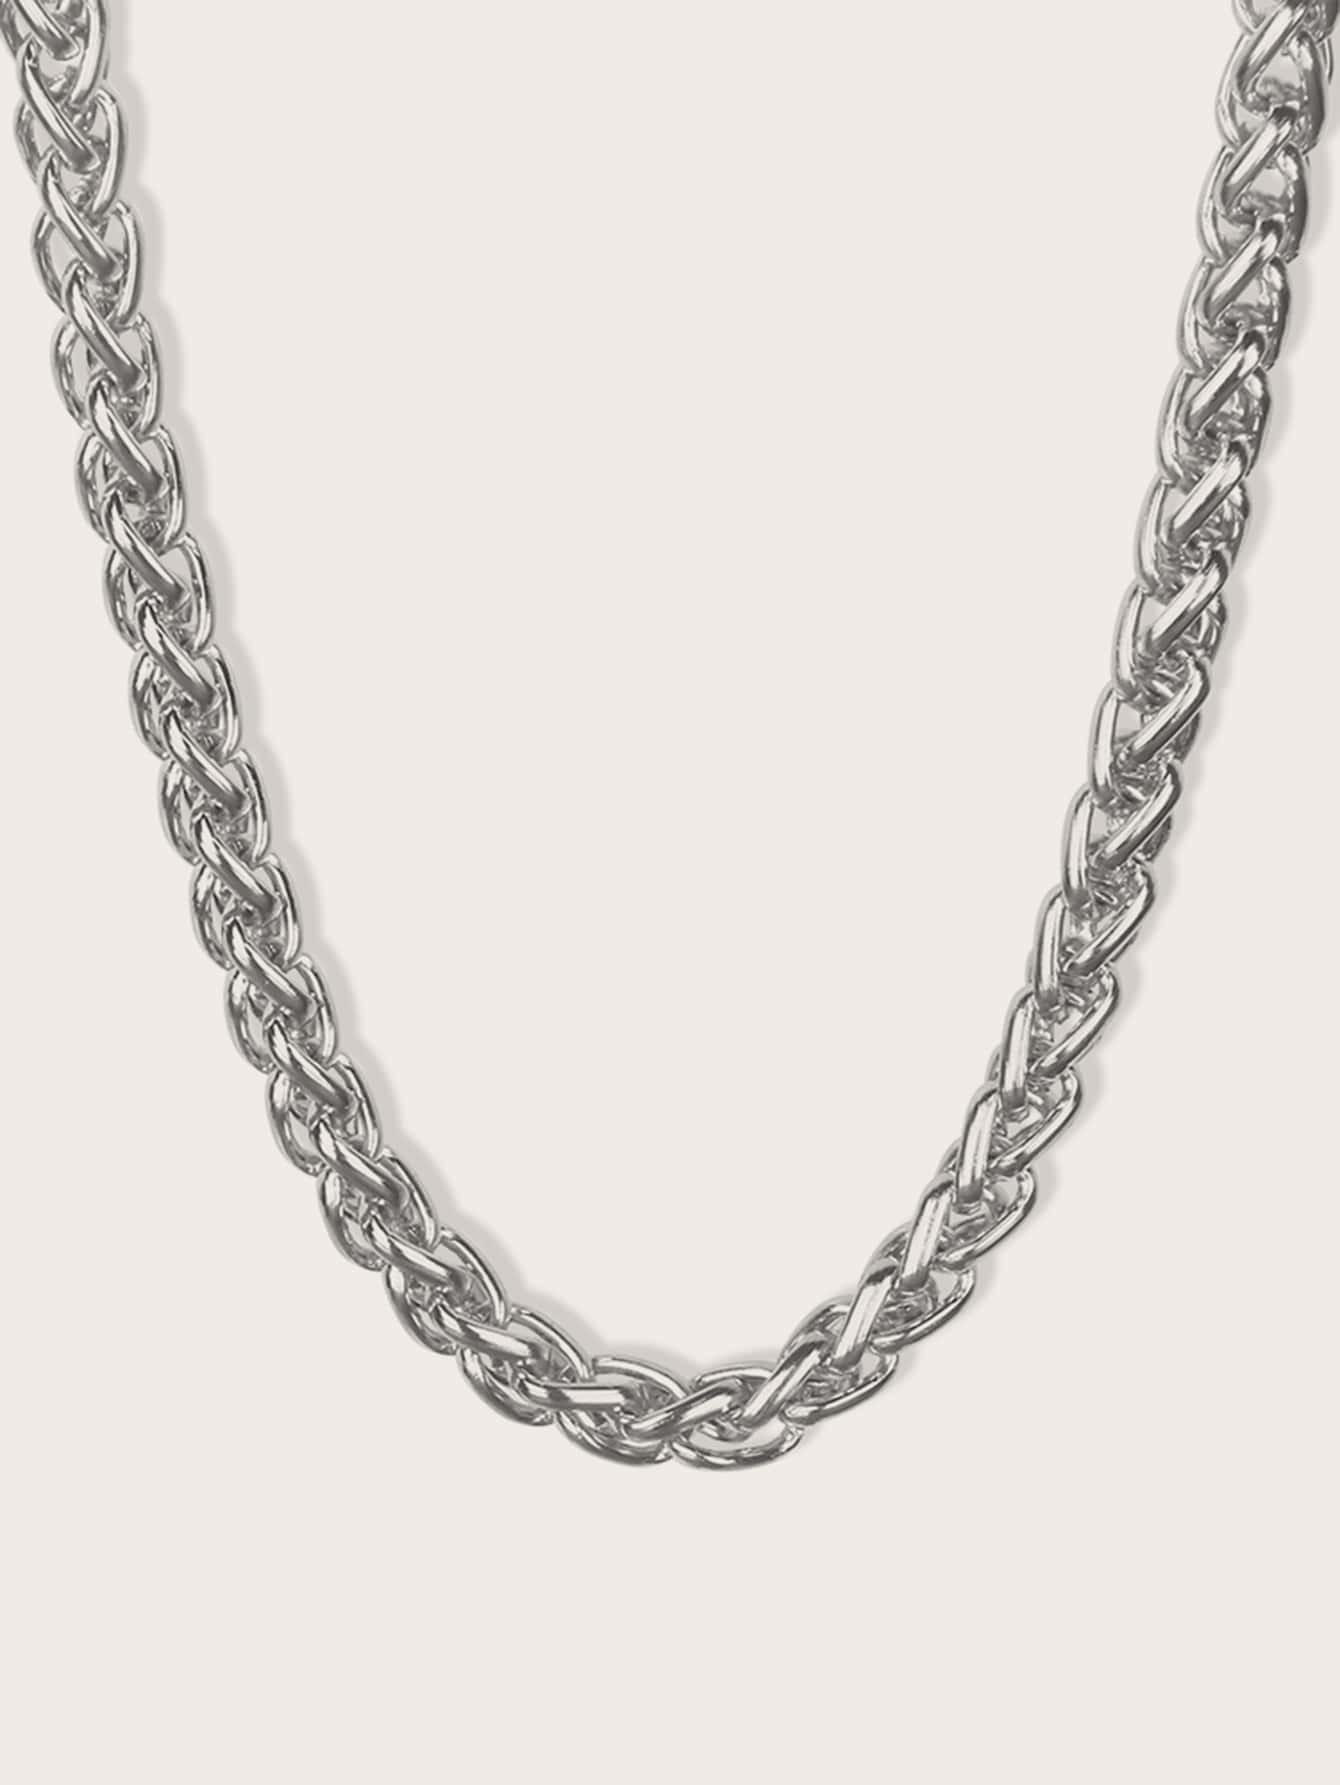 Pin Decor Waist Chain Belt - FLJ CORPORATIONS